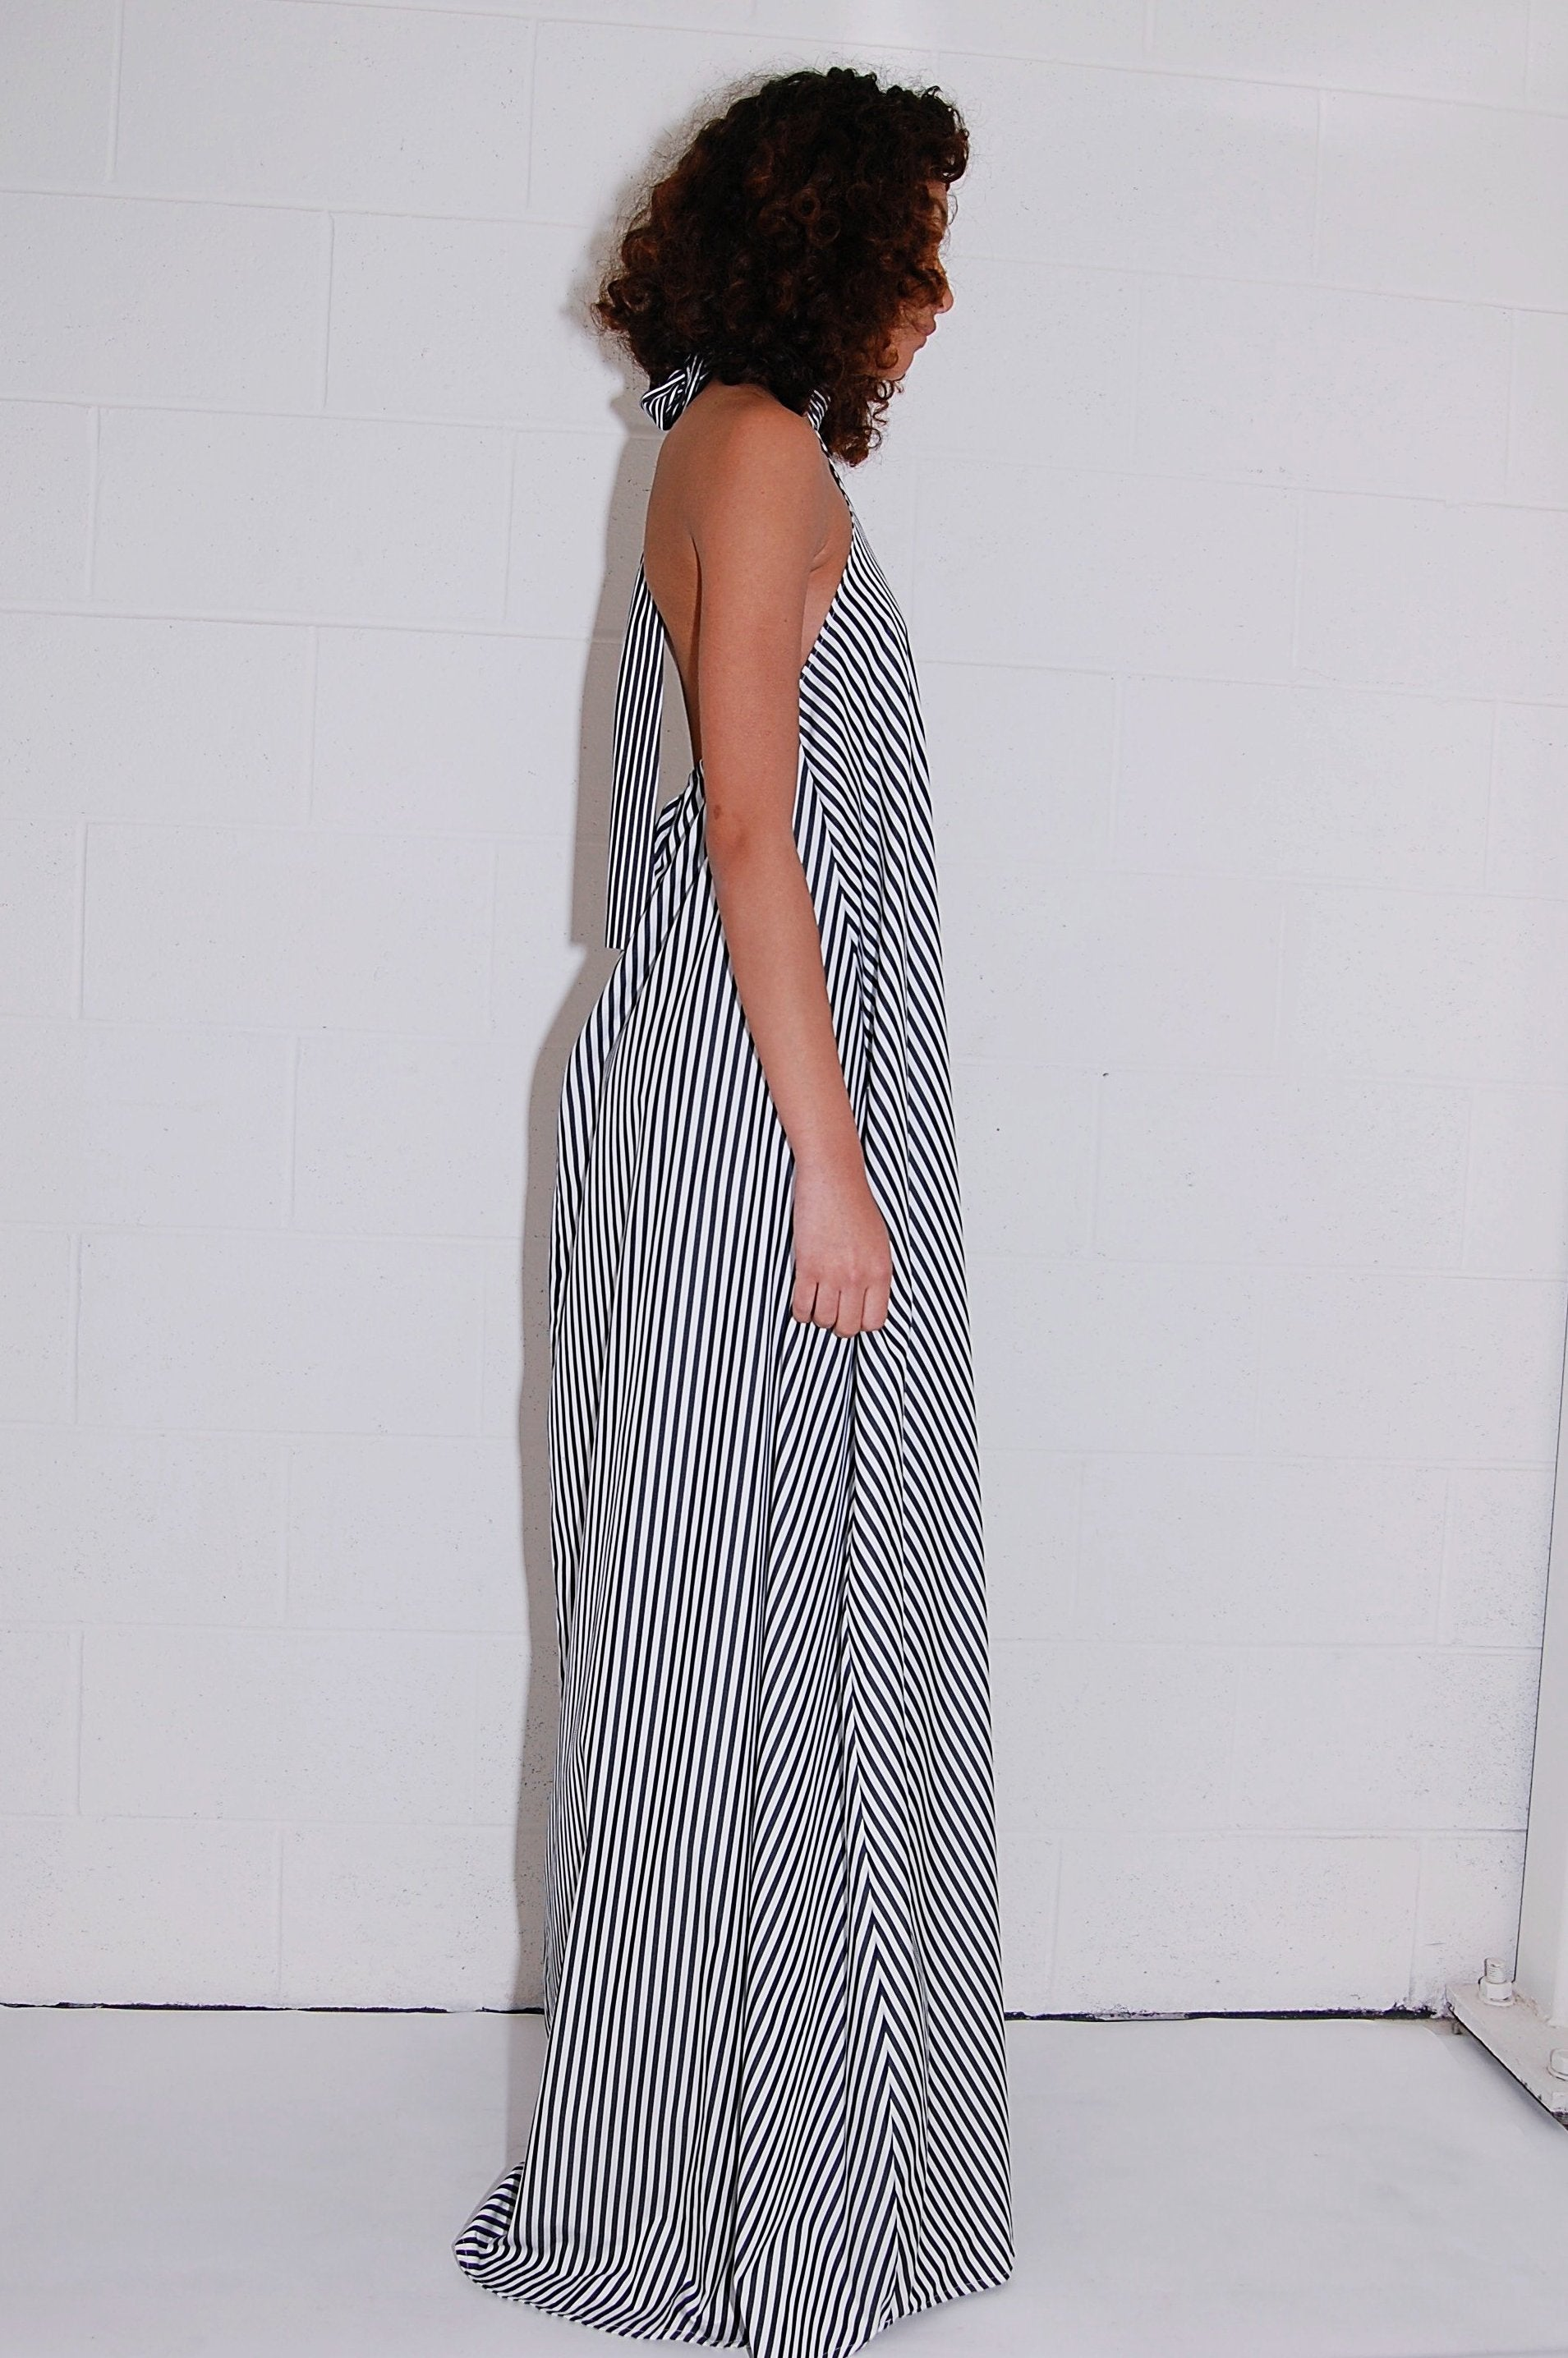 Taller Marmo Marcela Dress in Black and White Stripe - Curio Concept ...